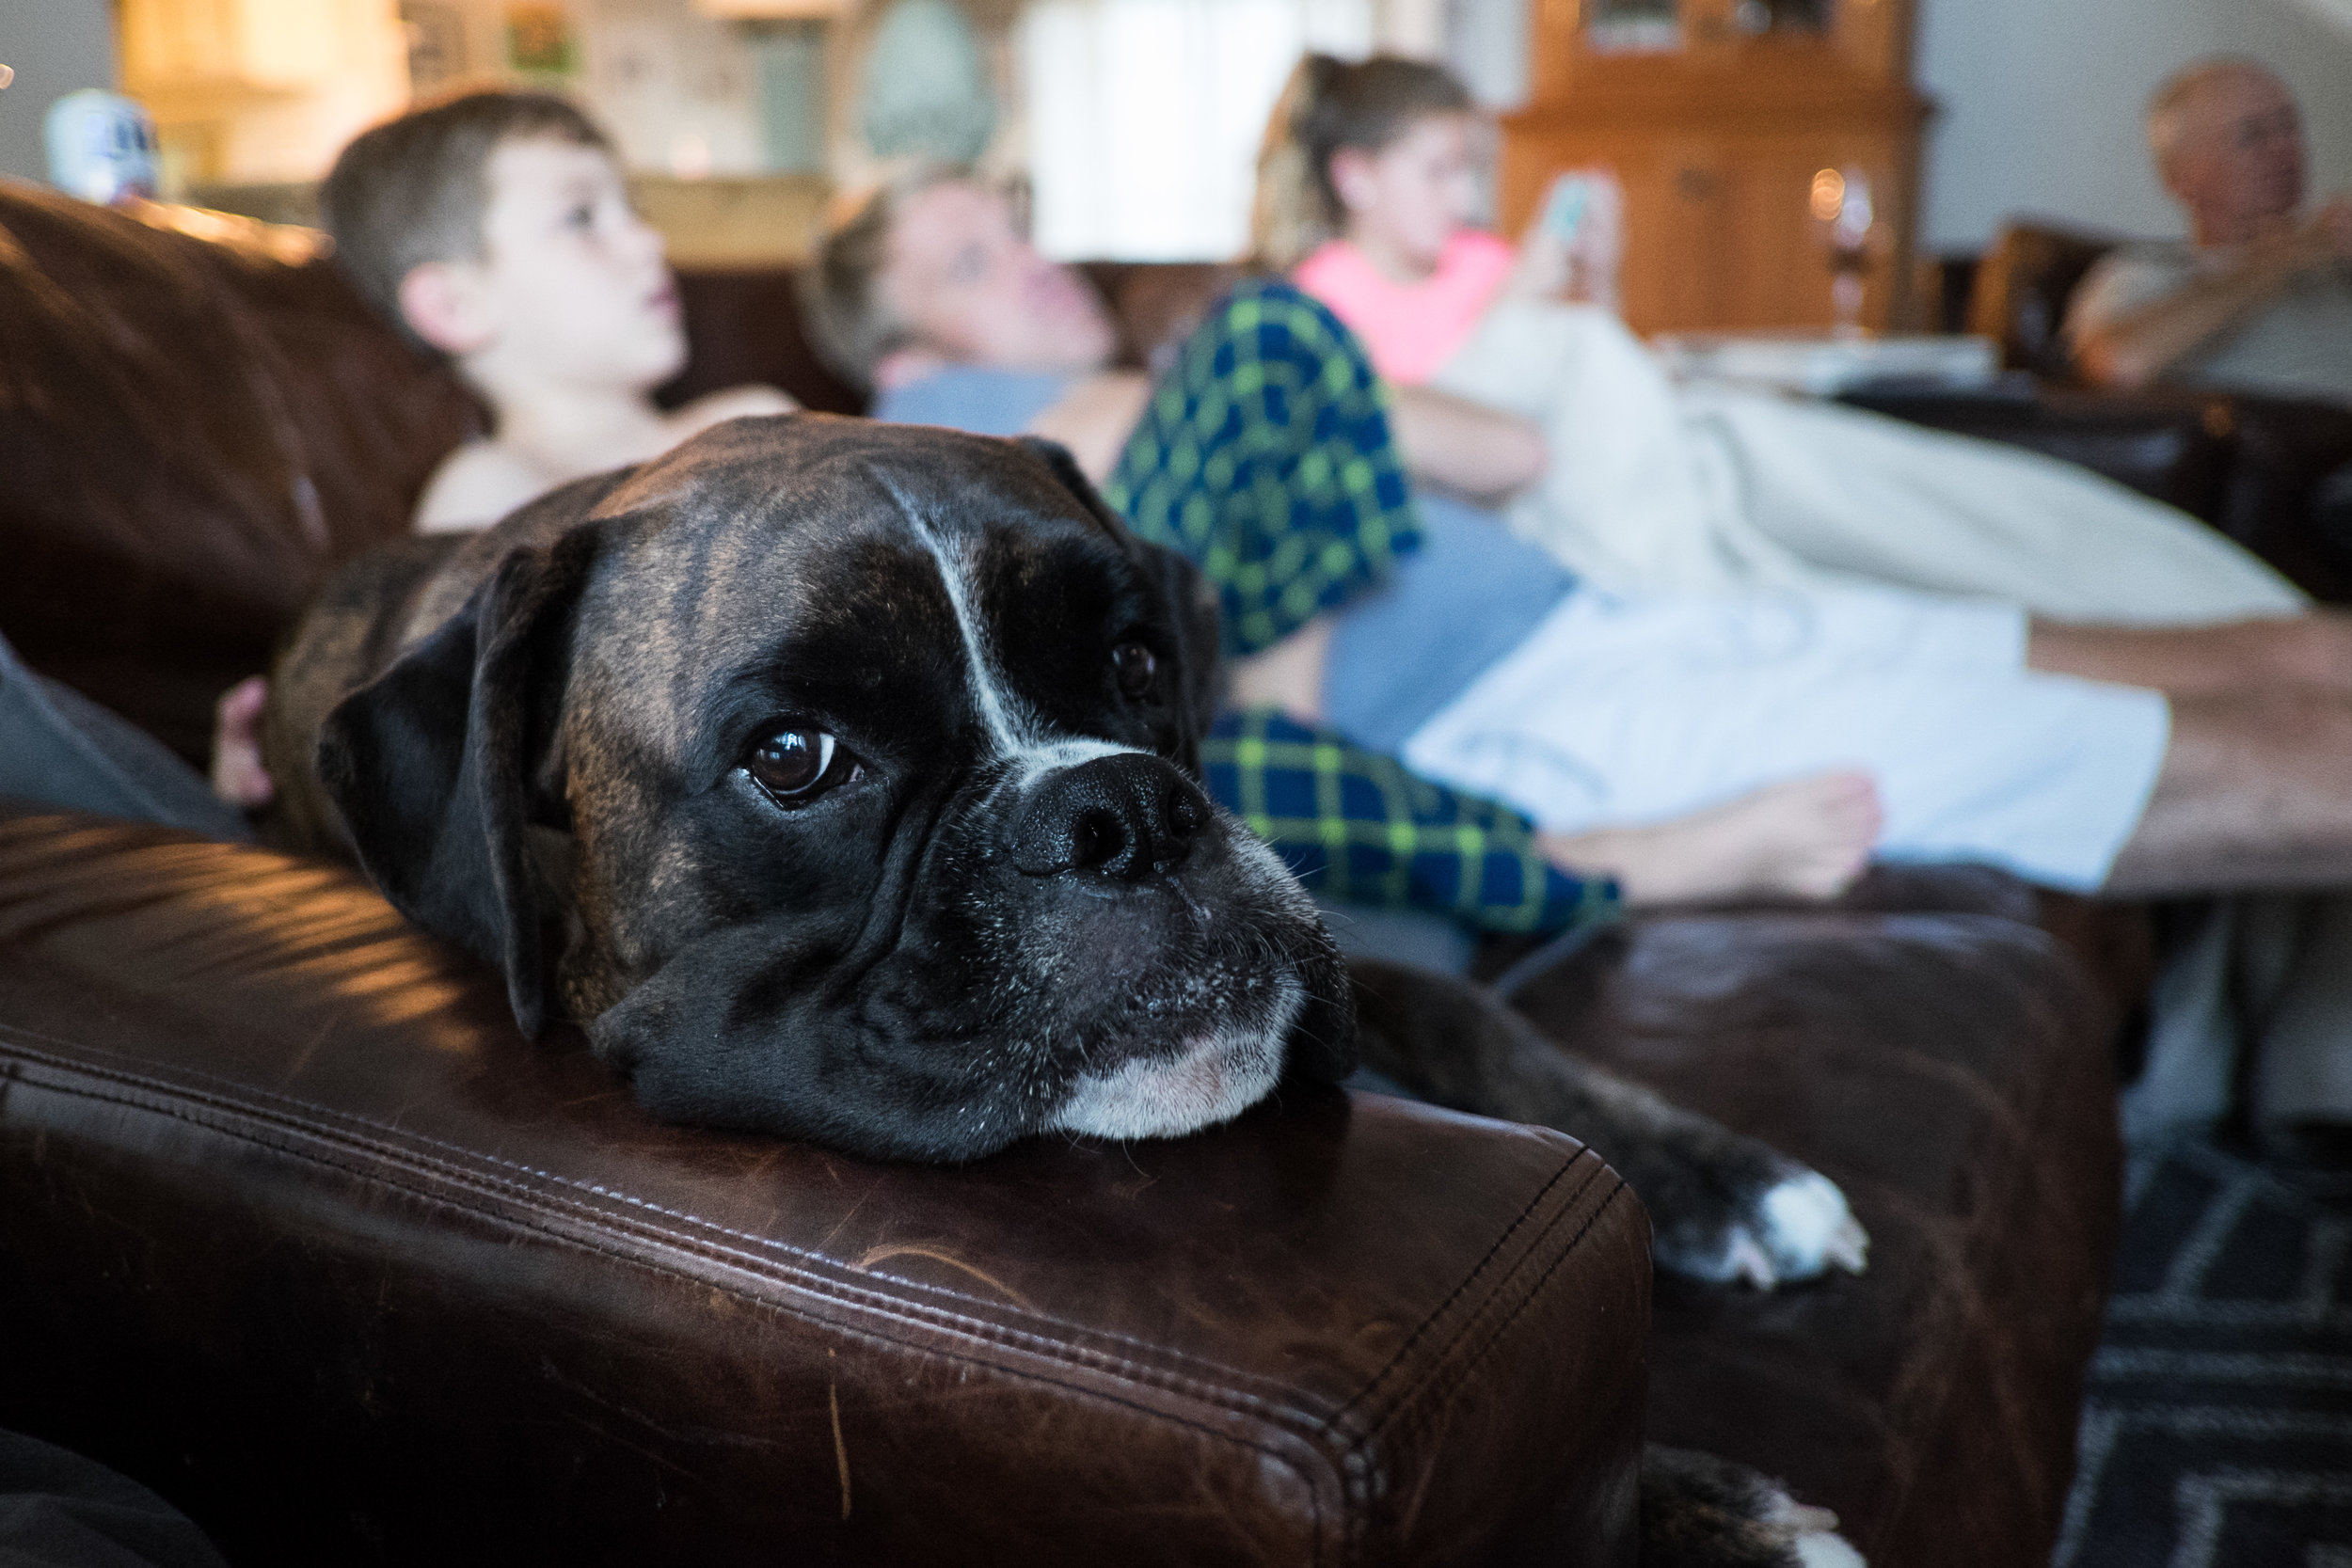 Brisket has officially taken up residence on the couch, even when we're clearly looking.